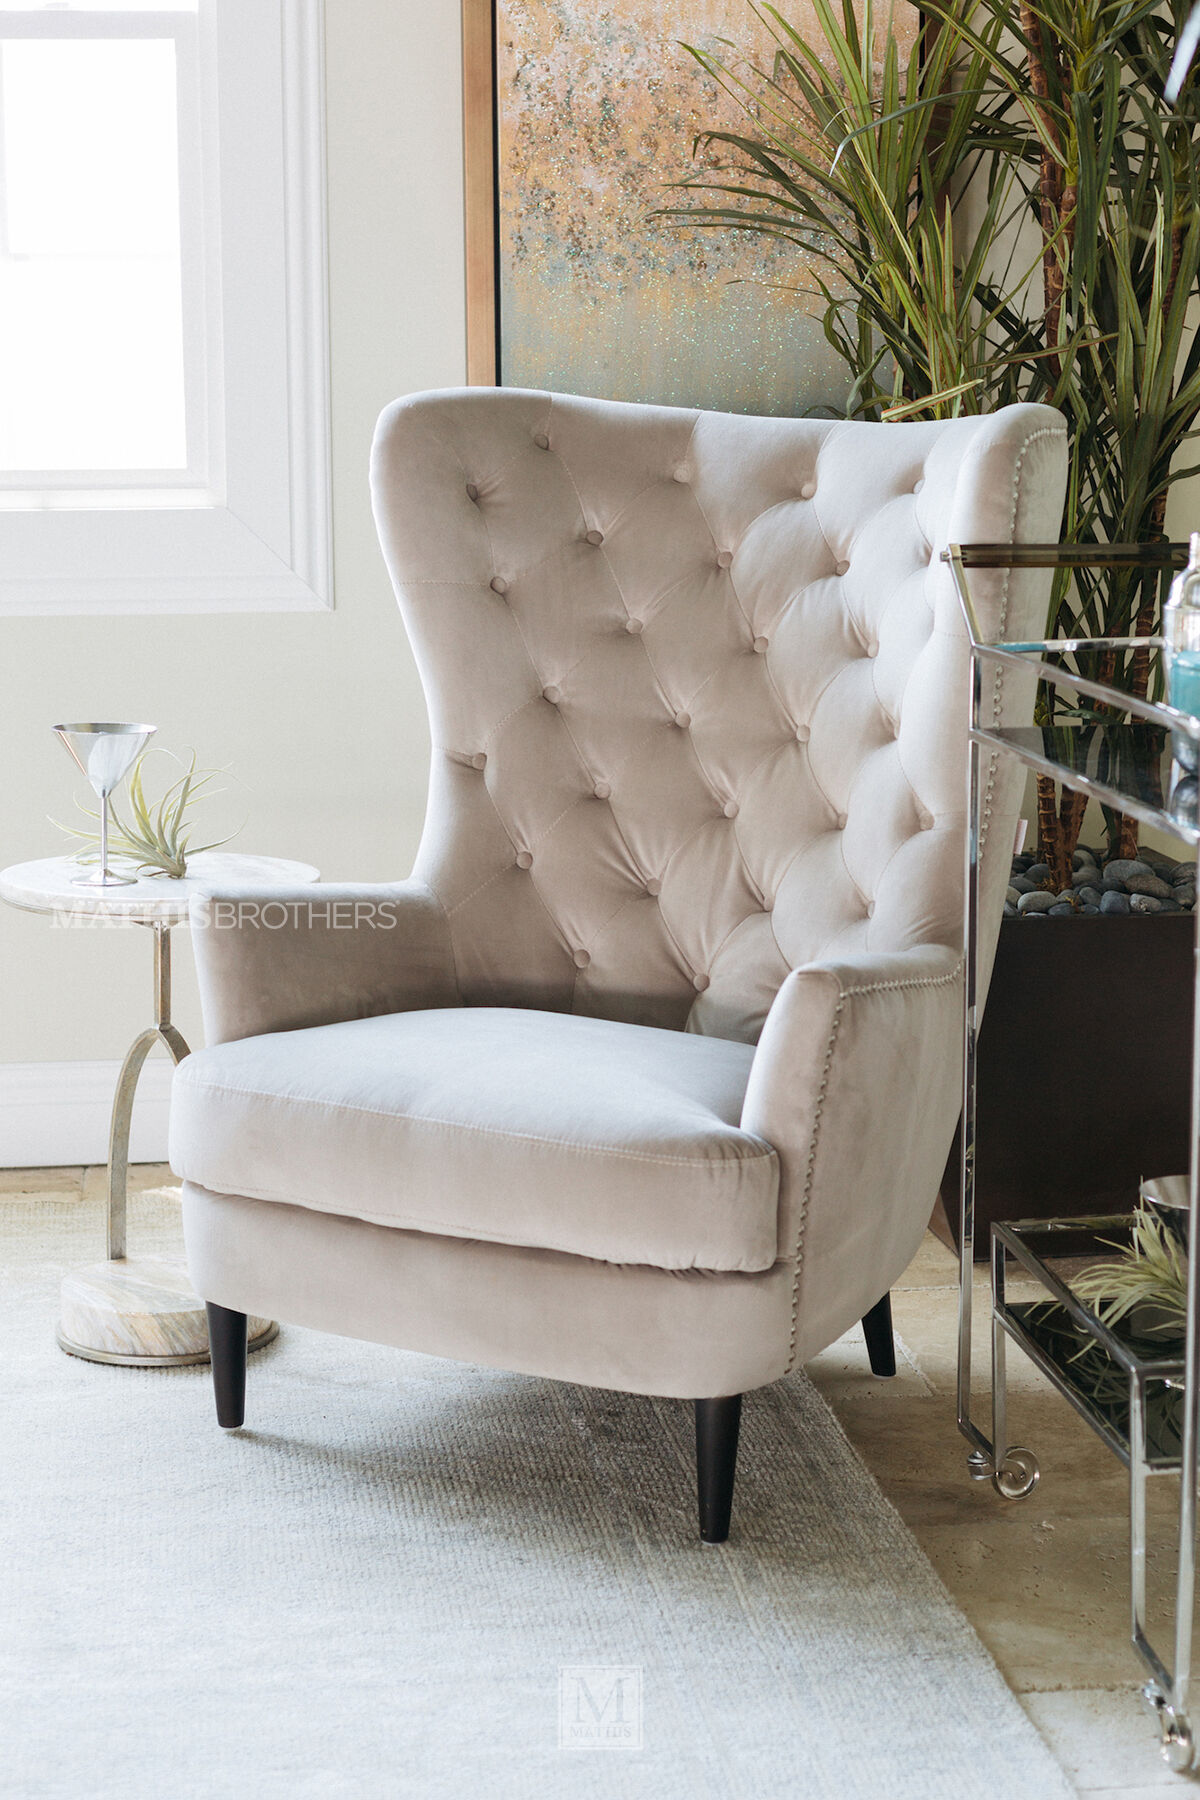 accent wingback chairs where can i buy chair covers in canada for living room mathis brothers button tufted contemporary 33 quot granite